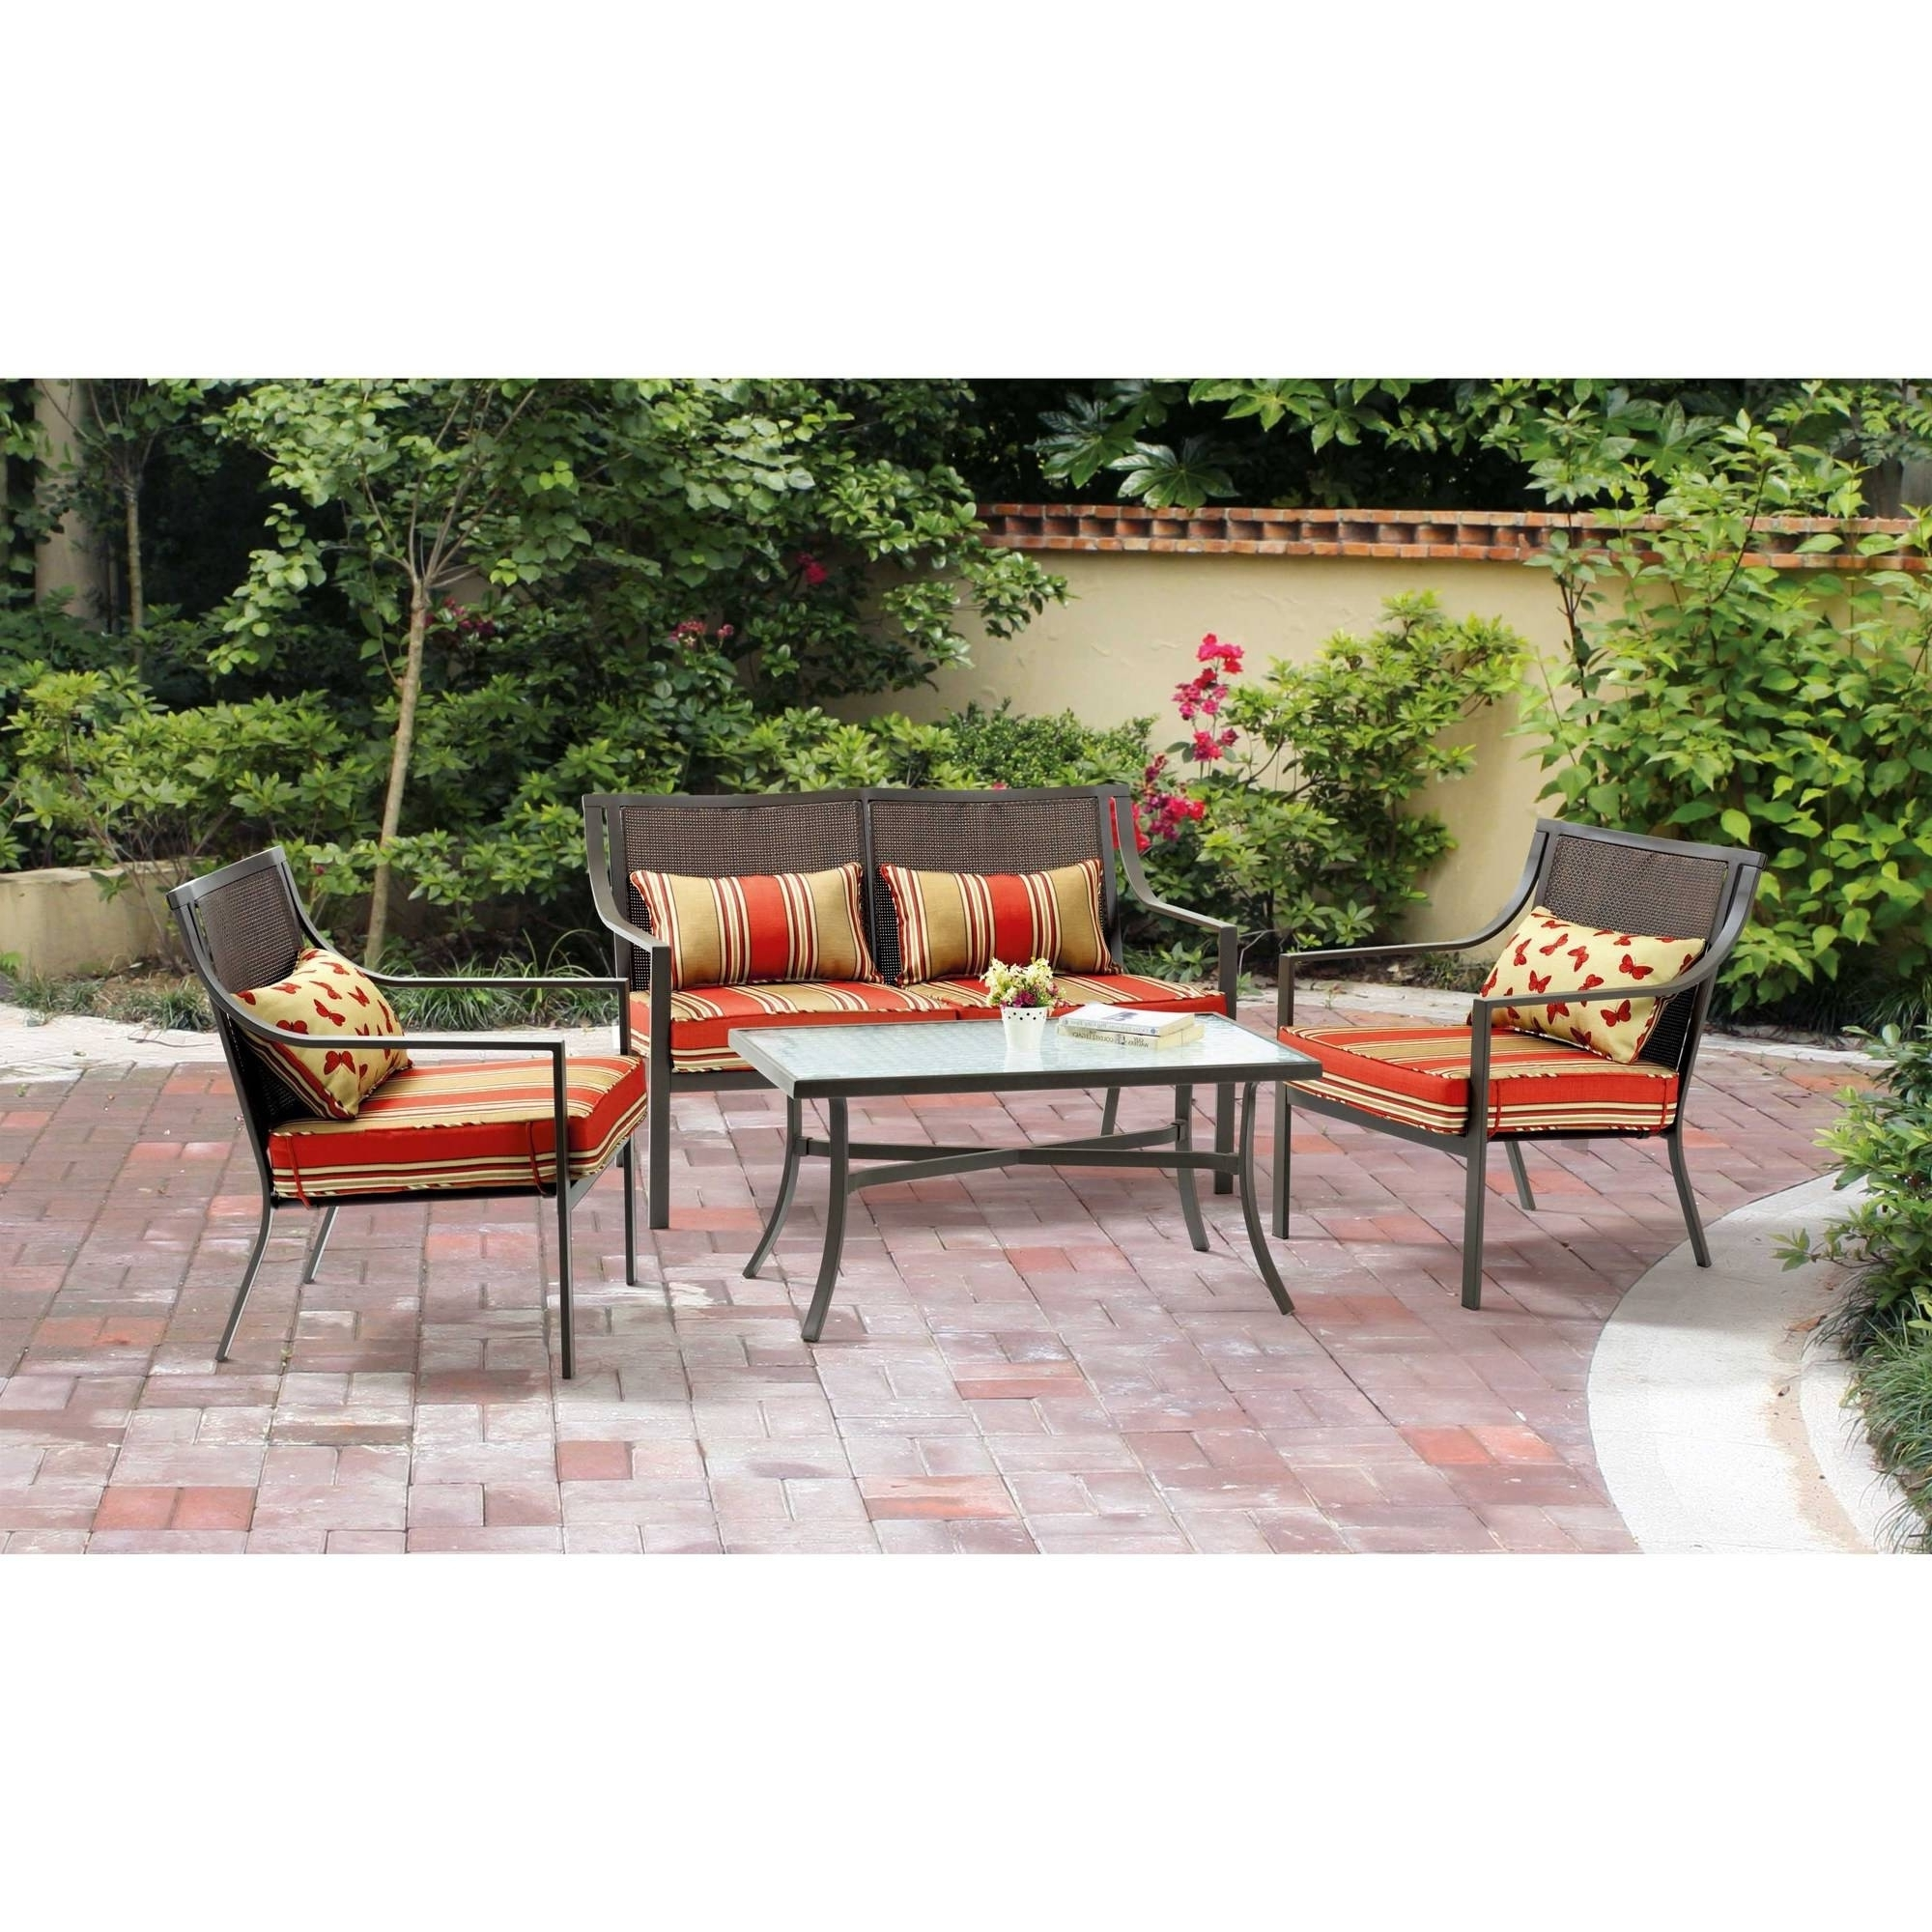 How To Make Patio Furniture Sets — The Home Redesign For Recent Nfm Patio Conversation Sets (View 6 of 15)